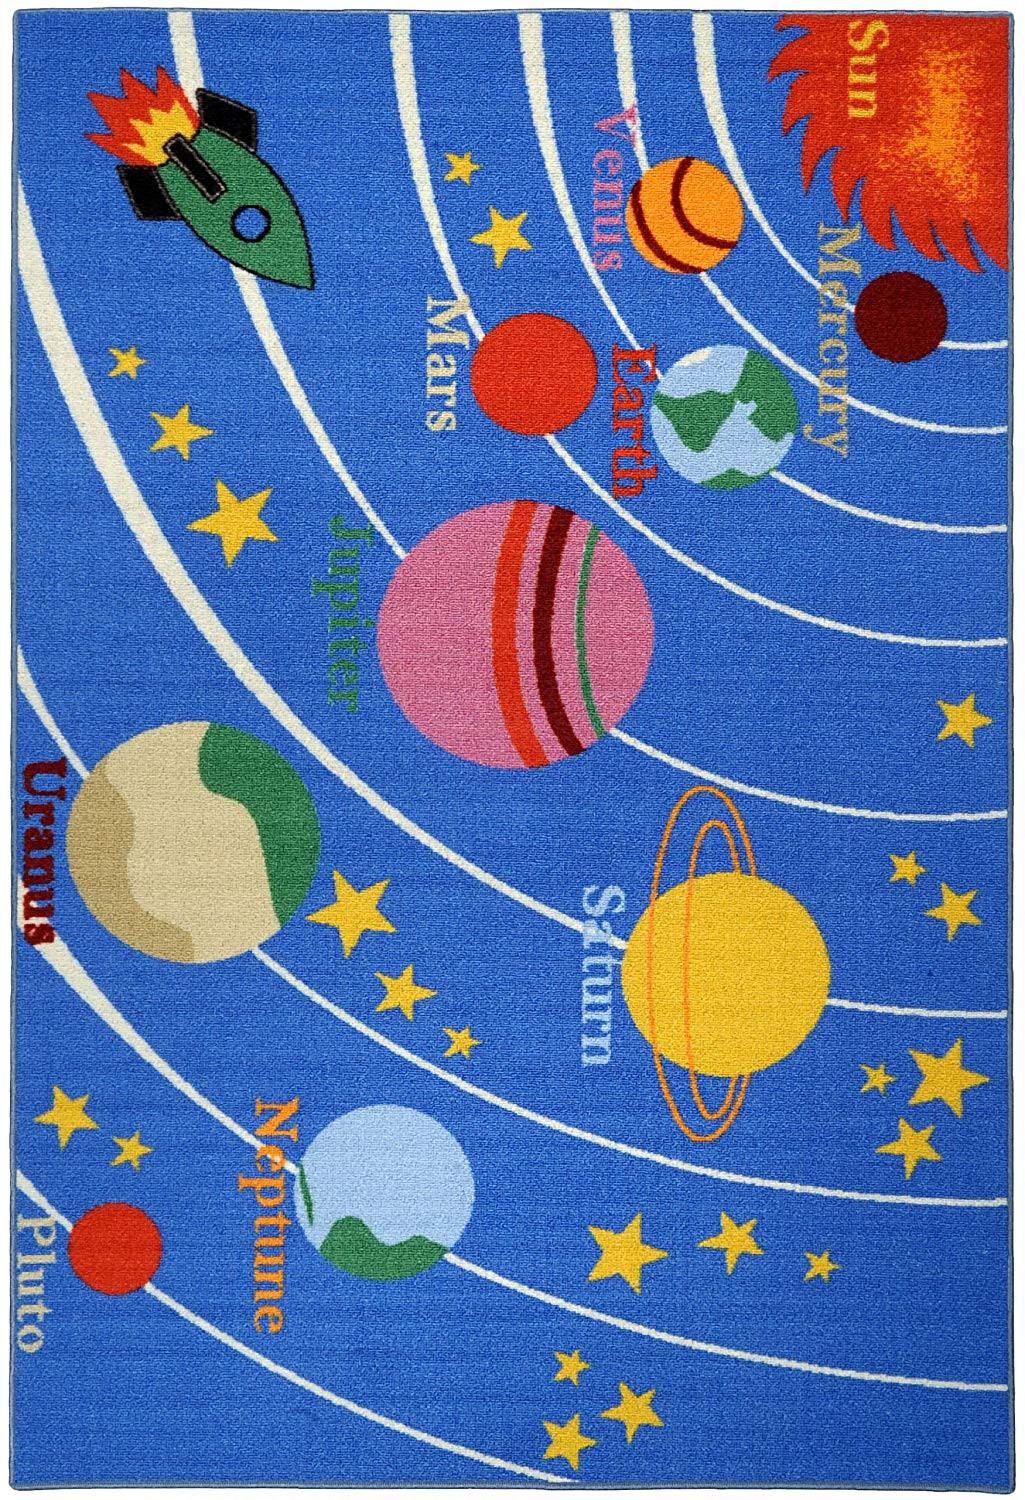 Carpet Designs for Kids Outer Space Decor totally Kids totally Bedrooms Kids